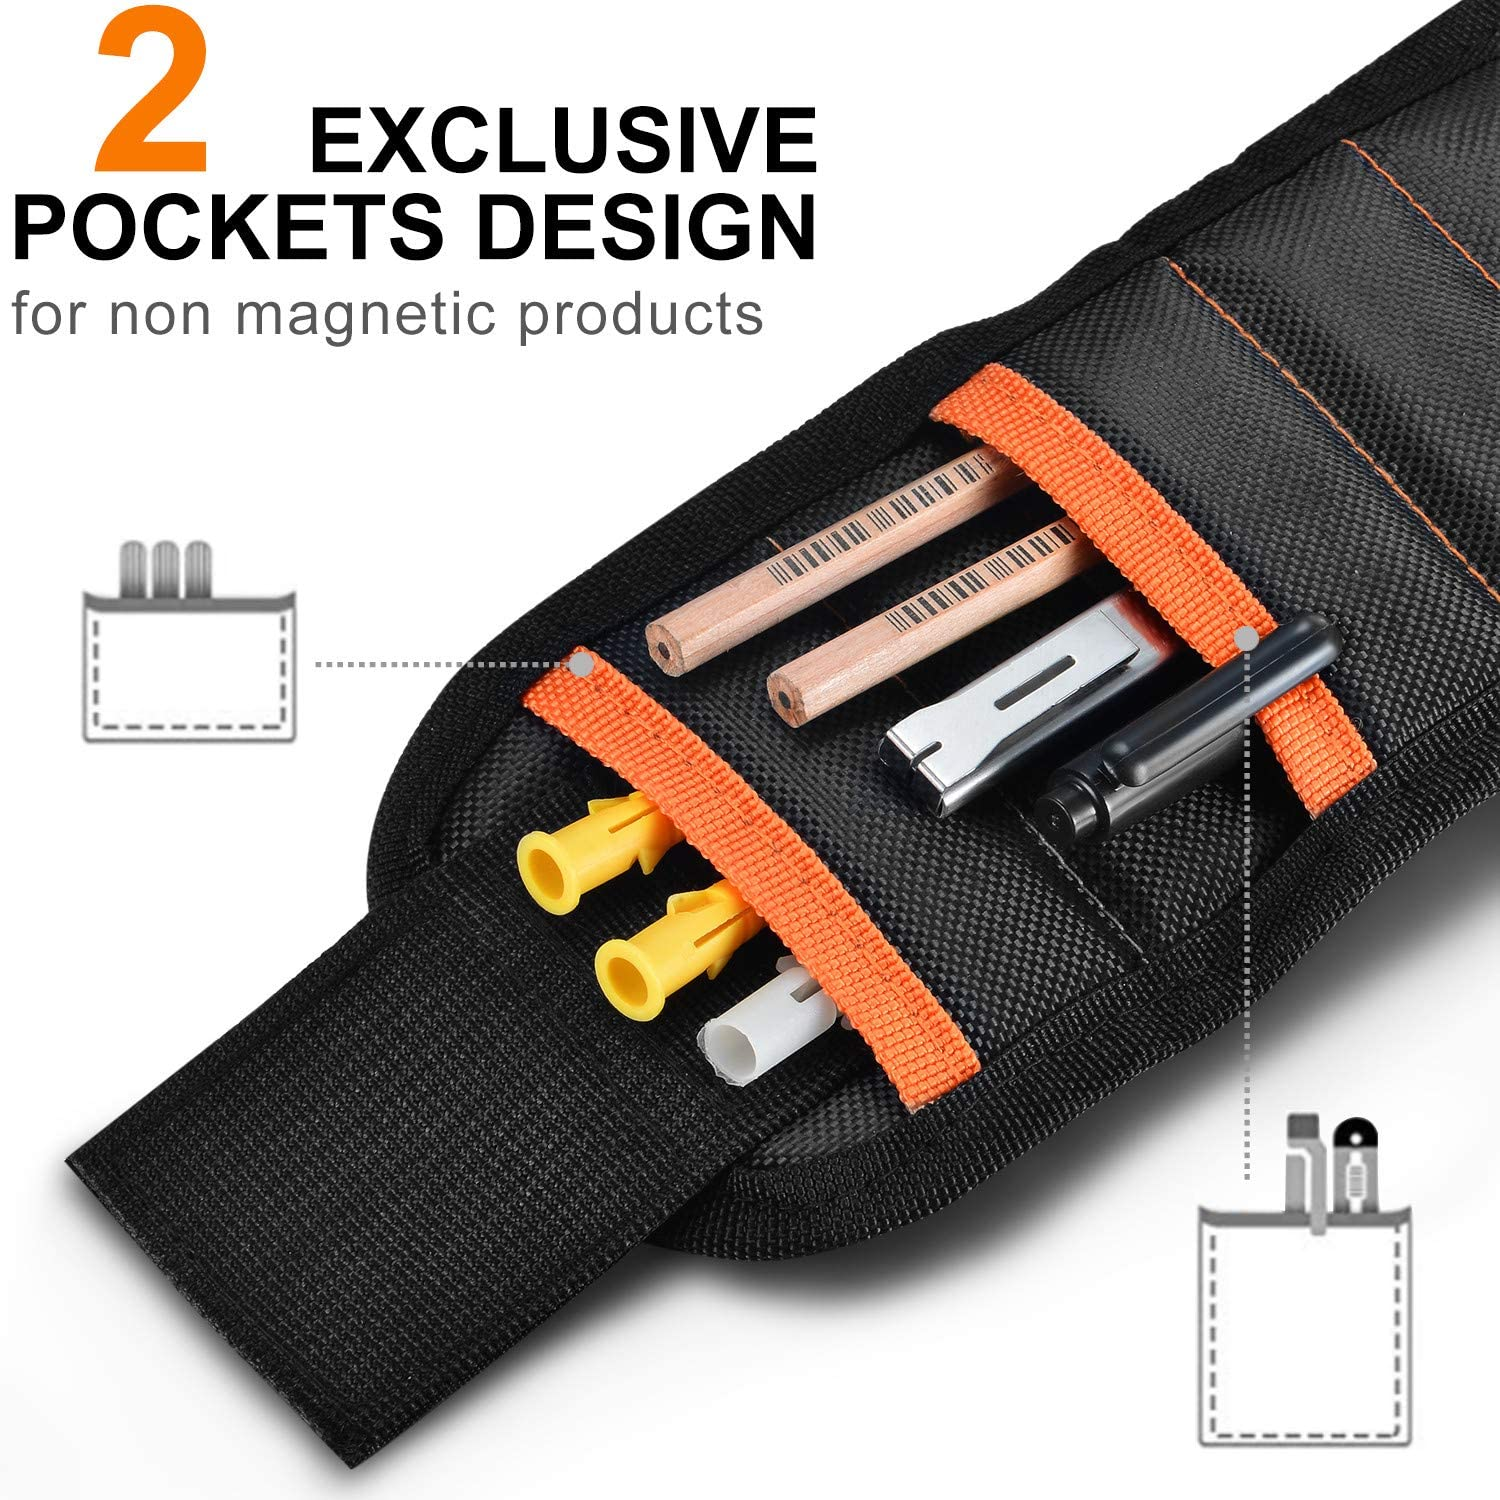 Screws Magnetic Wristband Paick 15 Powerful Magnets Magnetic Tool Wristband Tool Belt for Holding Tools Bolts Nails Drill Bits and Small Tools